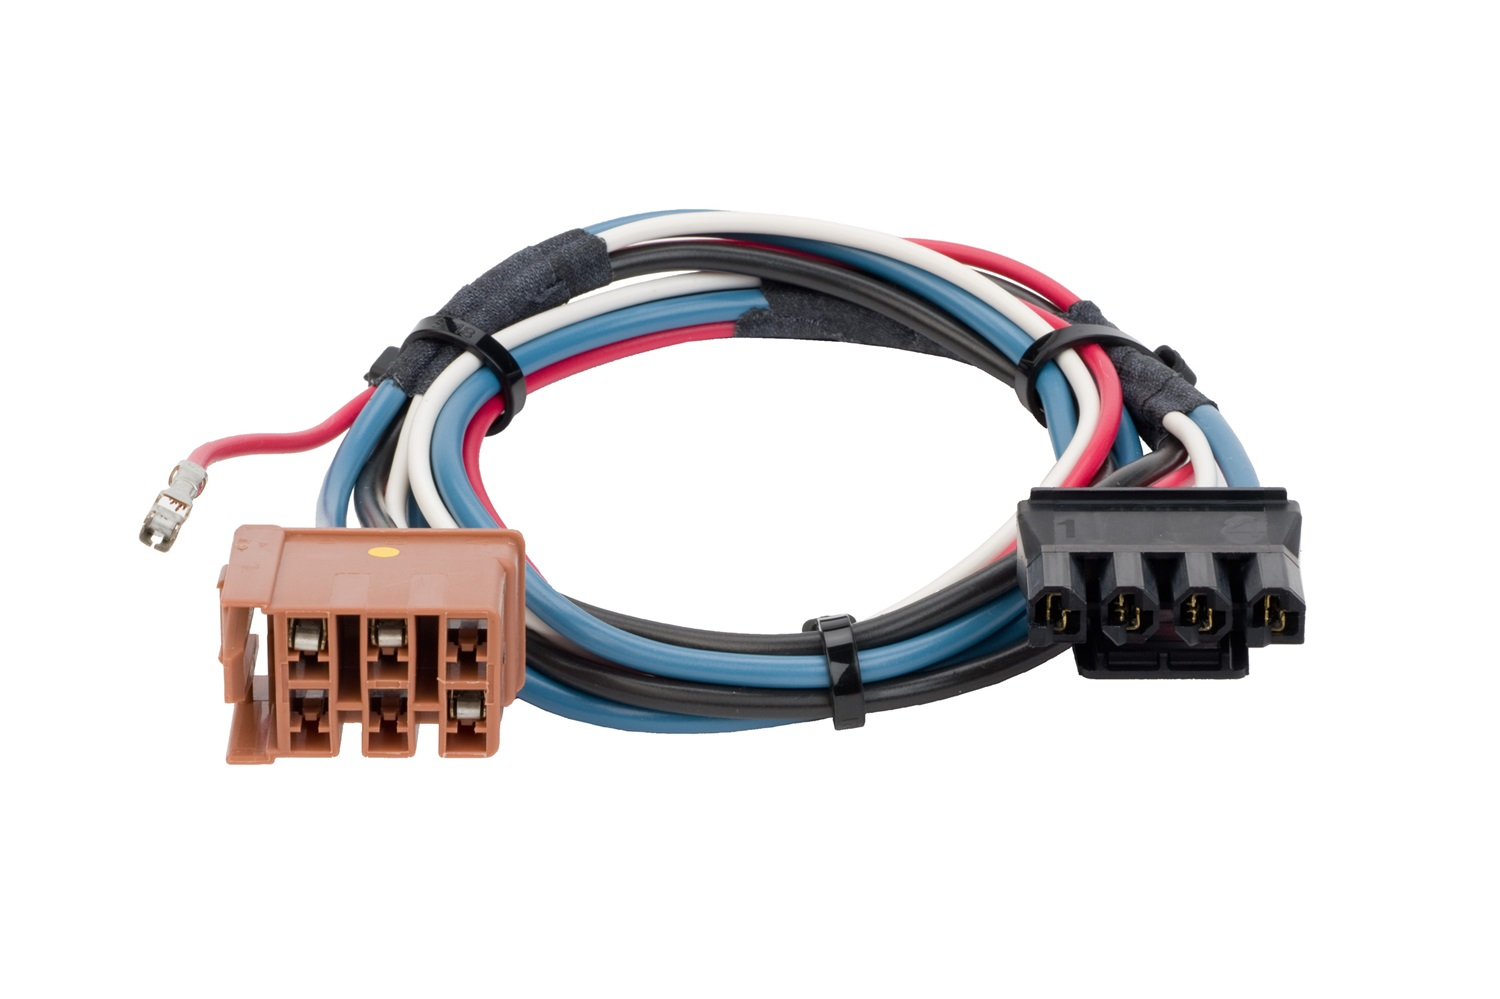 hopkins towing solution 47795 trailer brake control quick install rh picclick com reese trailer brake controller wiring harness trailer brake controller install kit